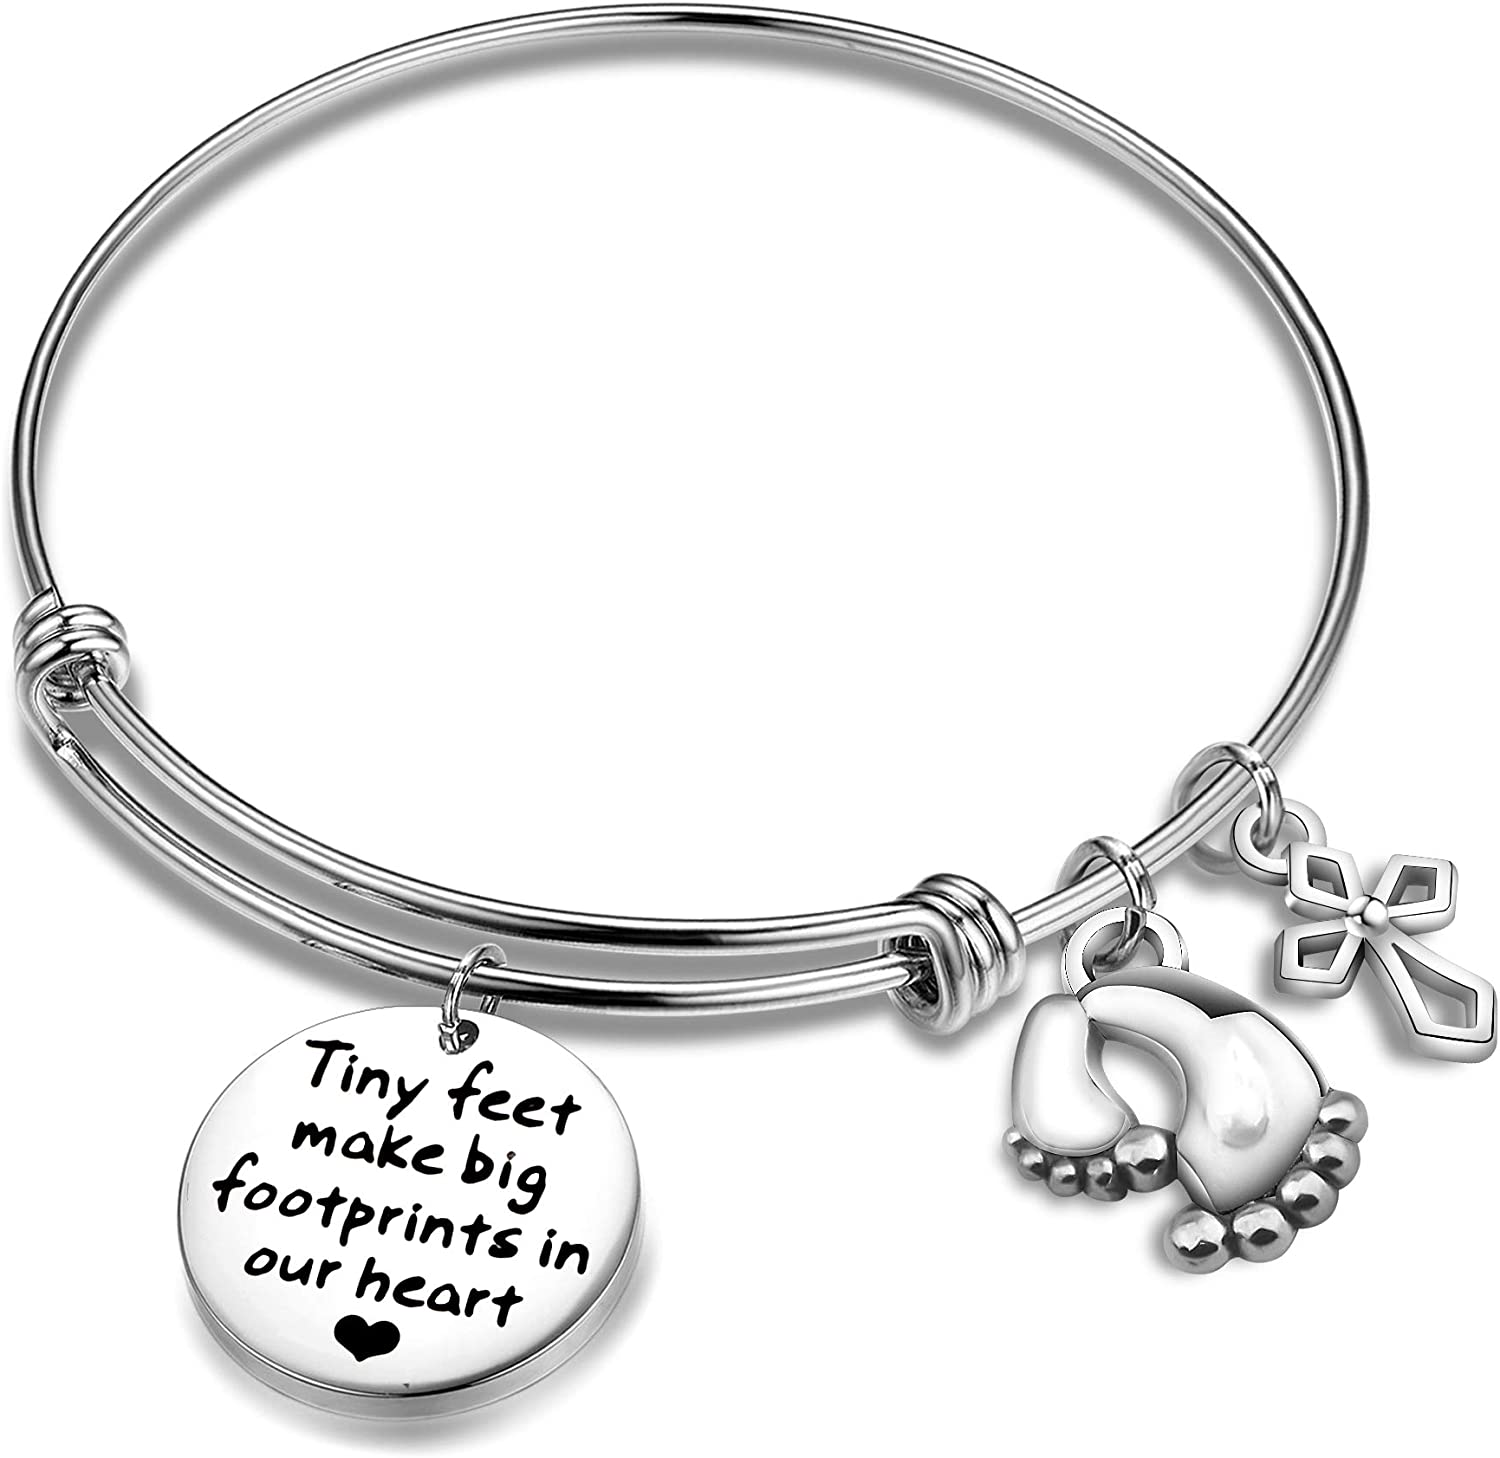 Baby feet charm Quoted gift Baby shower gift Baby feet bracelet  Baby gift Baby shower bracelet Personalised gift New mom